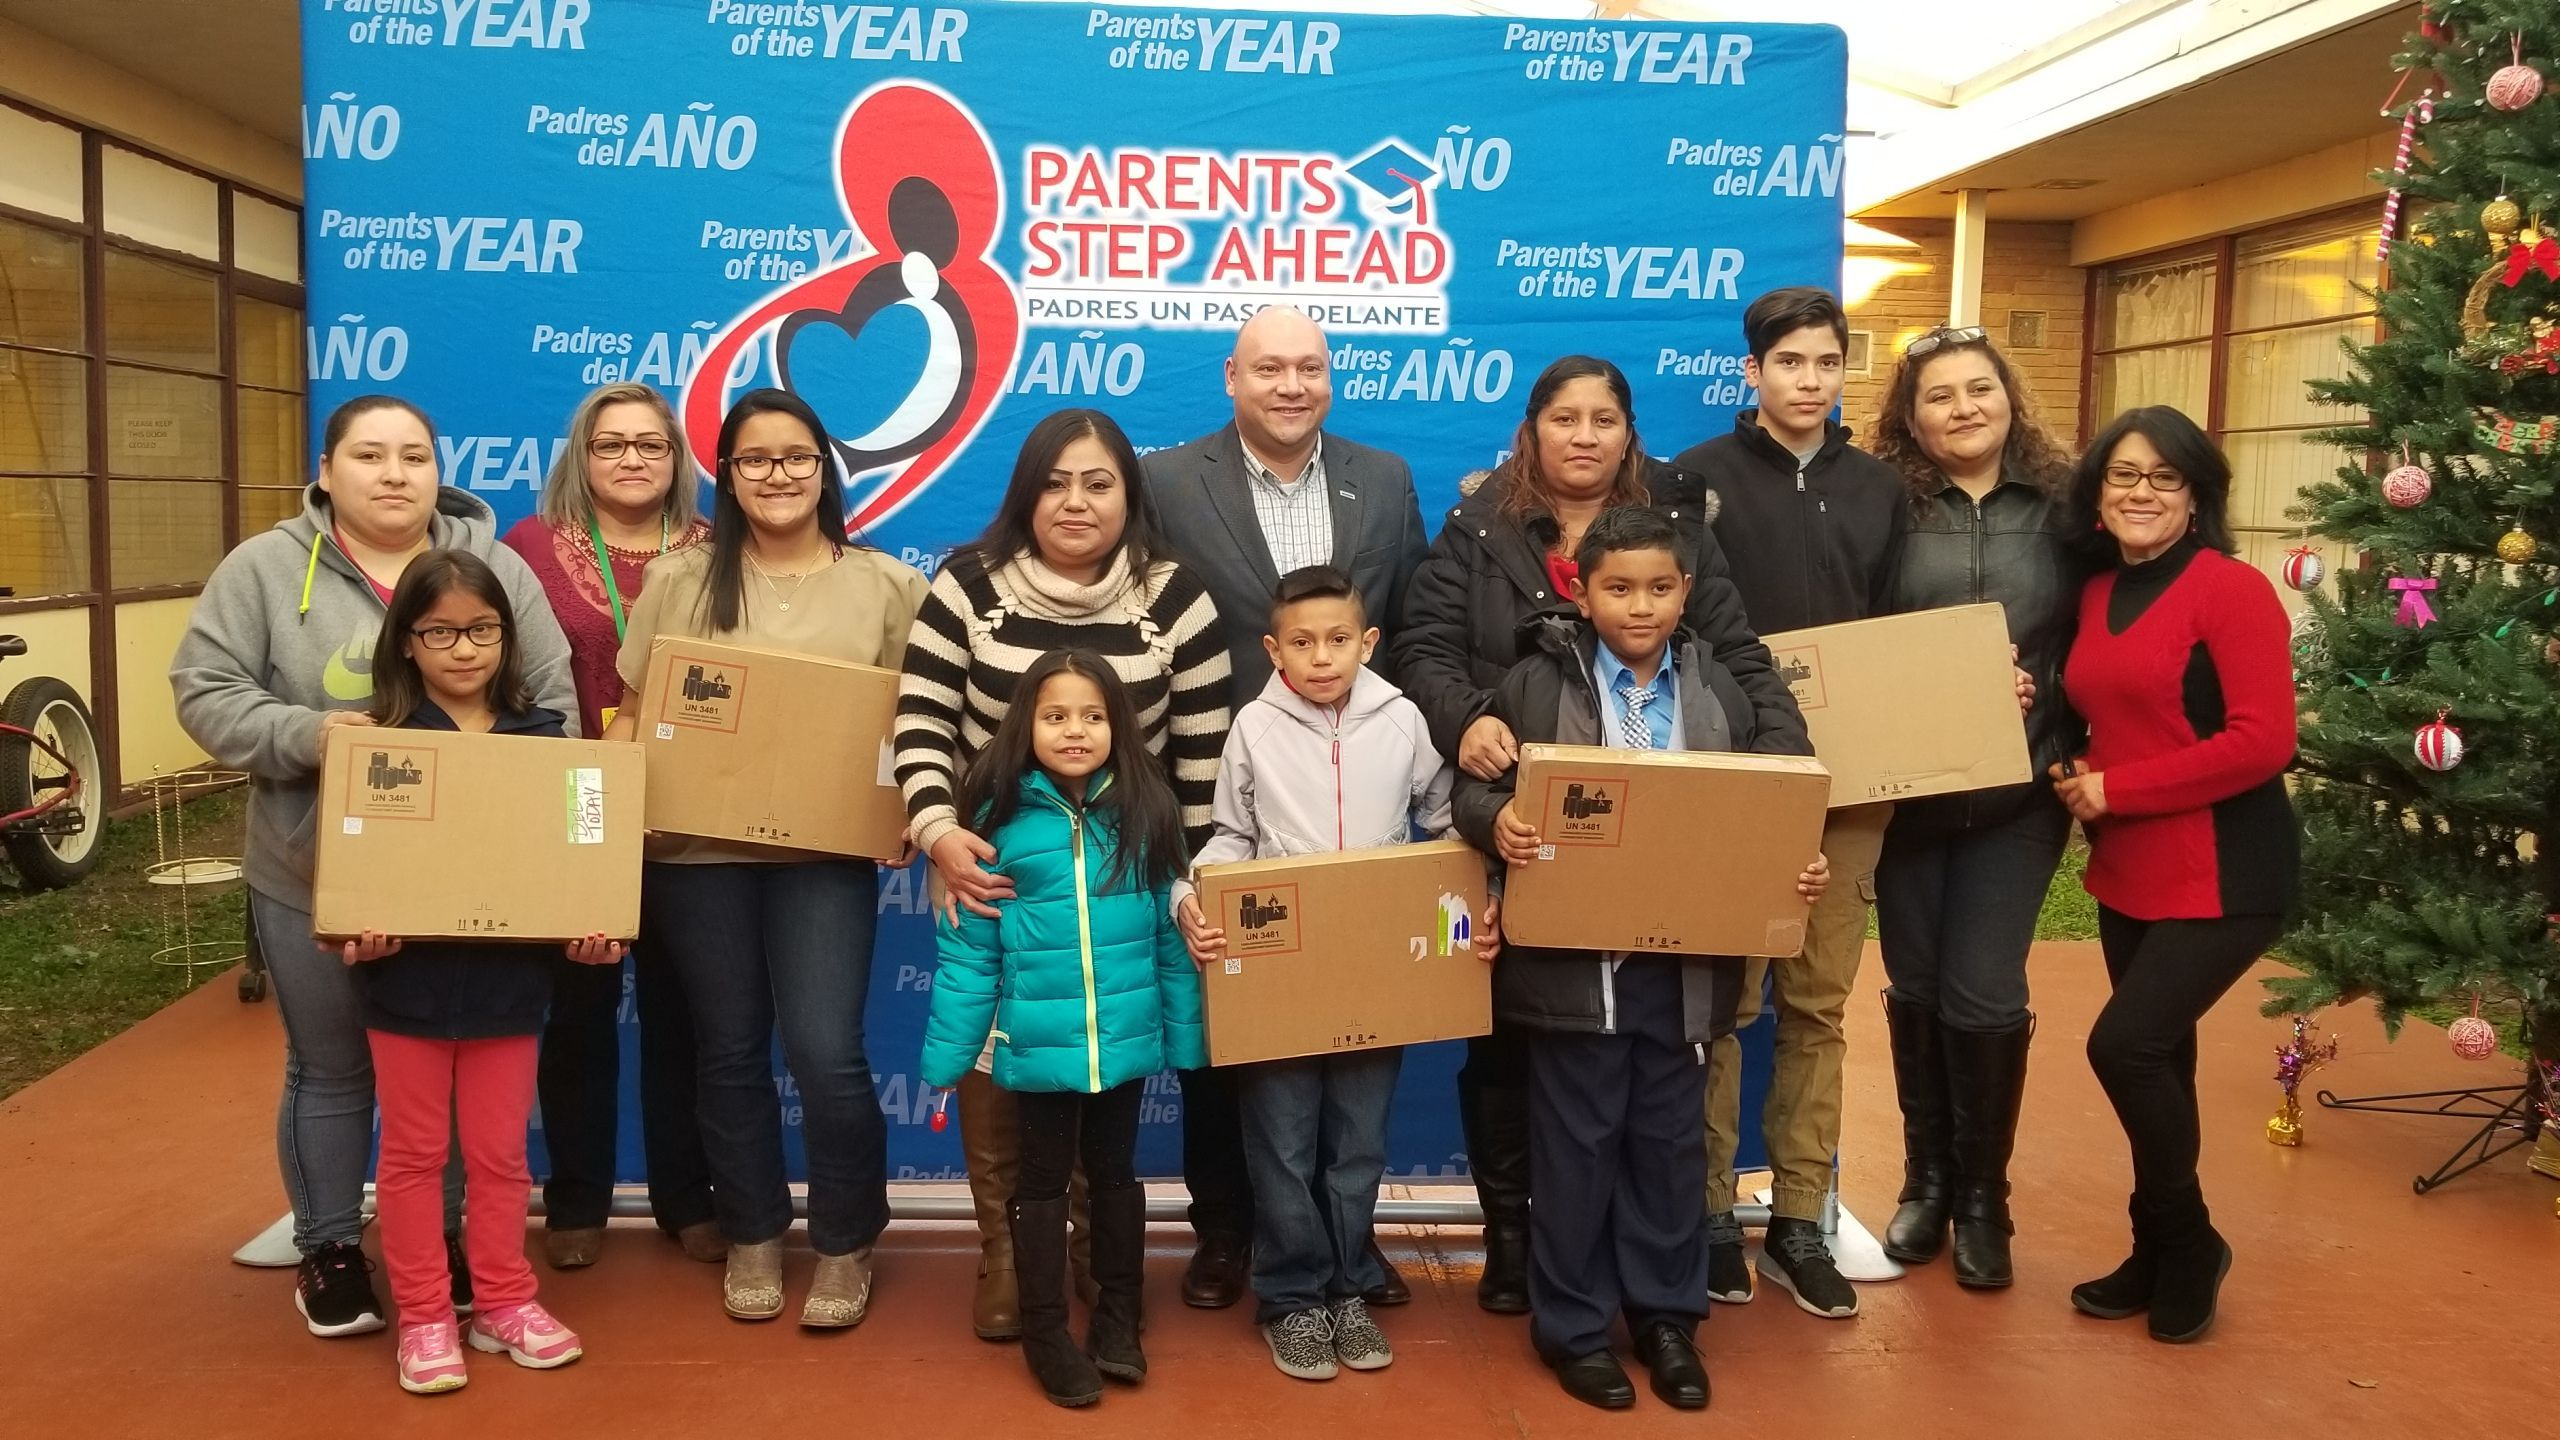 """Jesse Cortez, Global Inclusion Effectiveness Lead at HPE celebrates with """"Parents of the Year"""" and rewards students by donating laptops."""